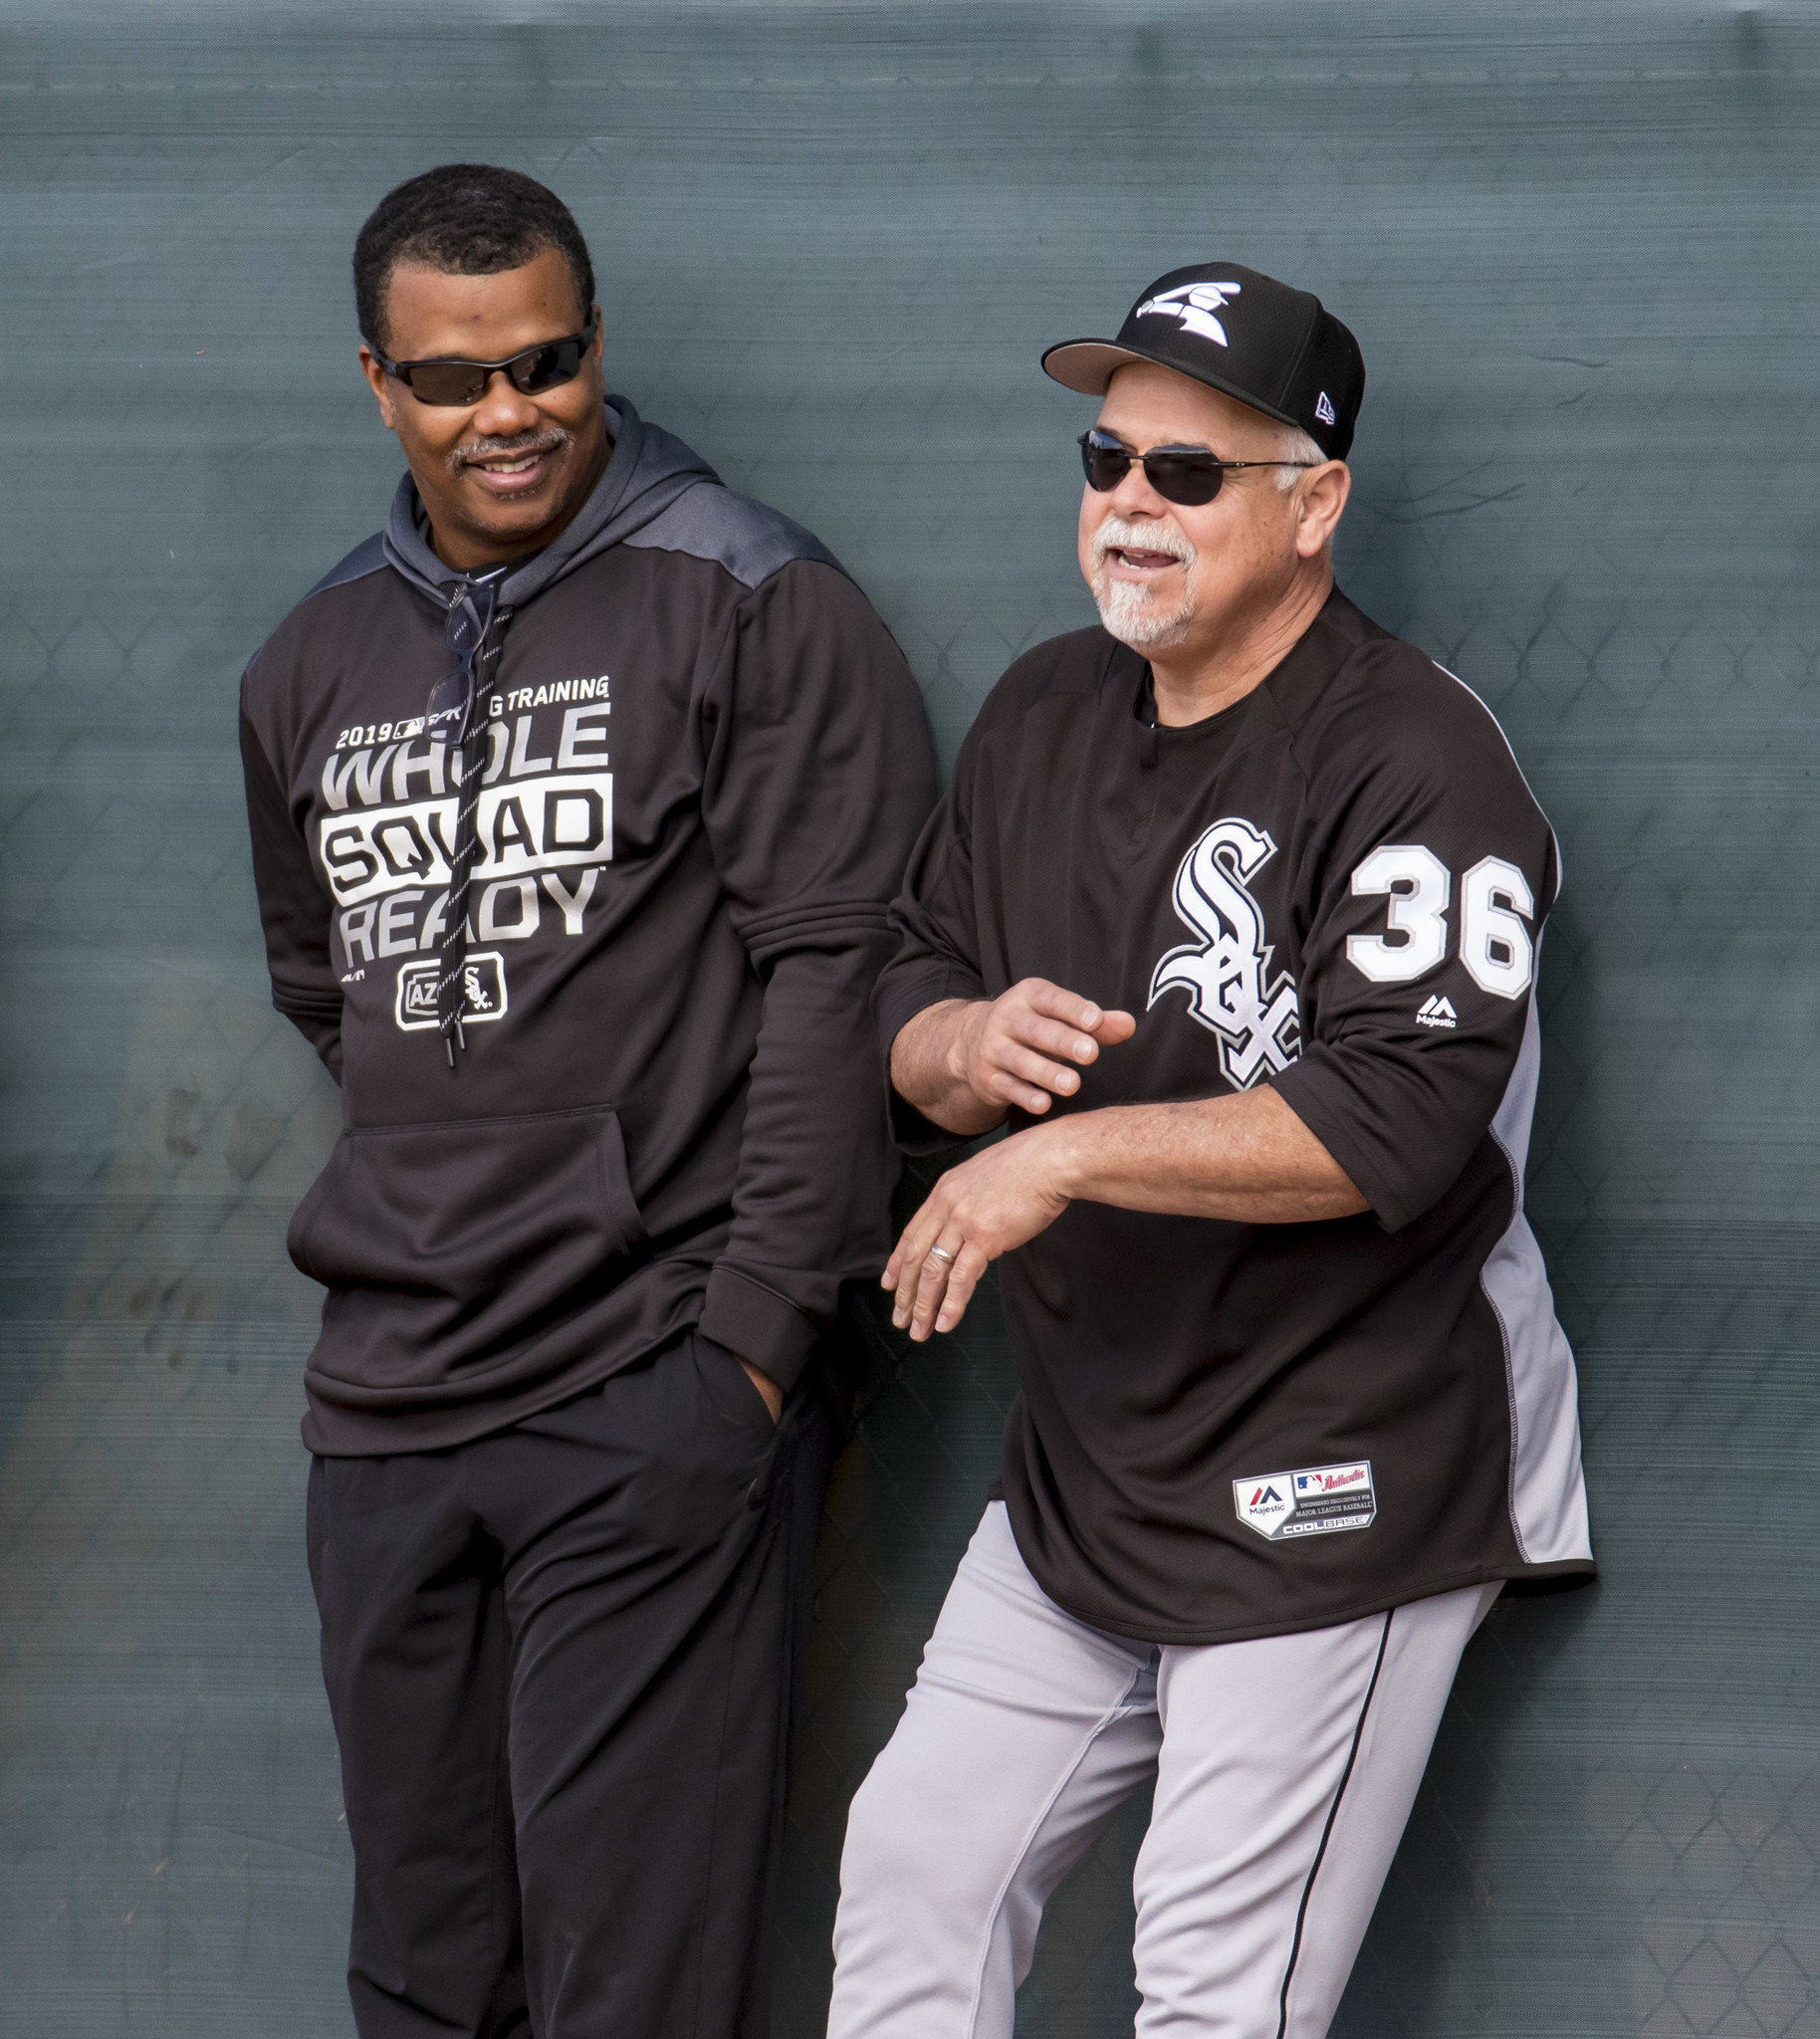 a82959577 Flipboard  5 takeaways from White Sox spring training